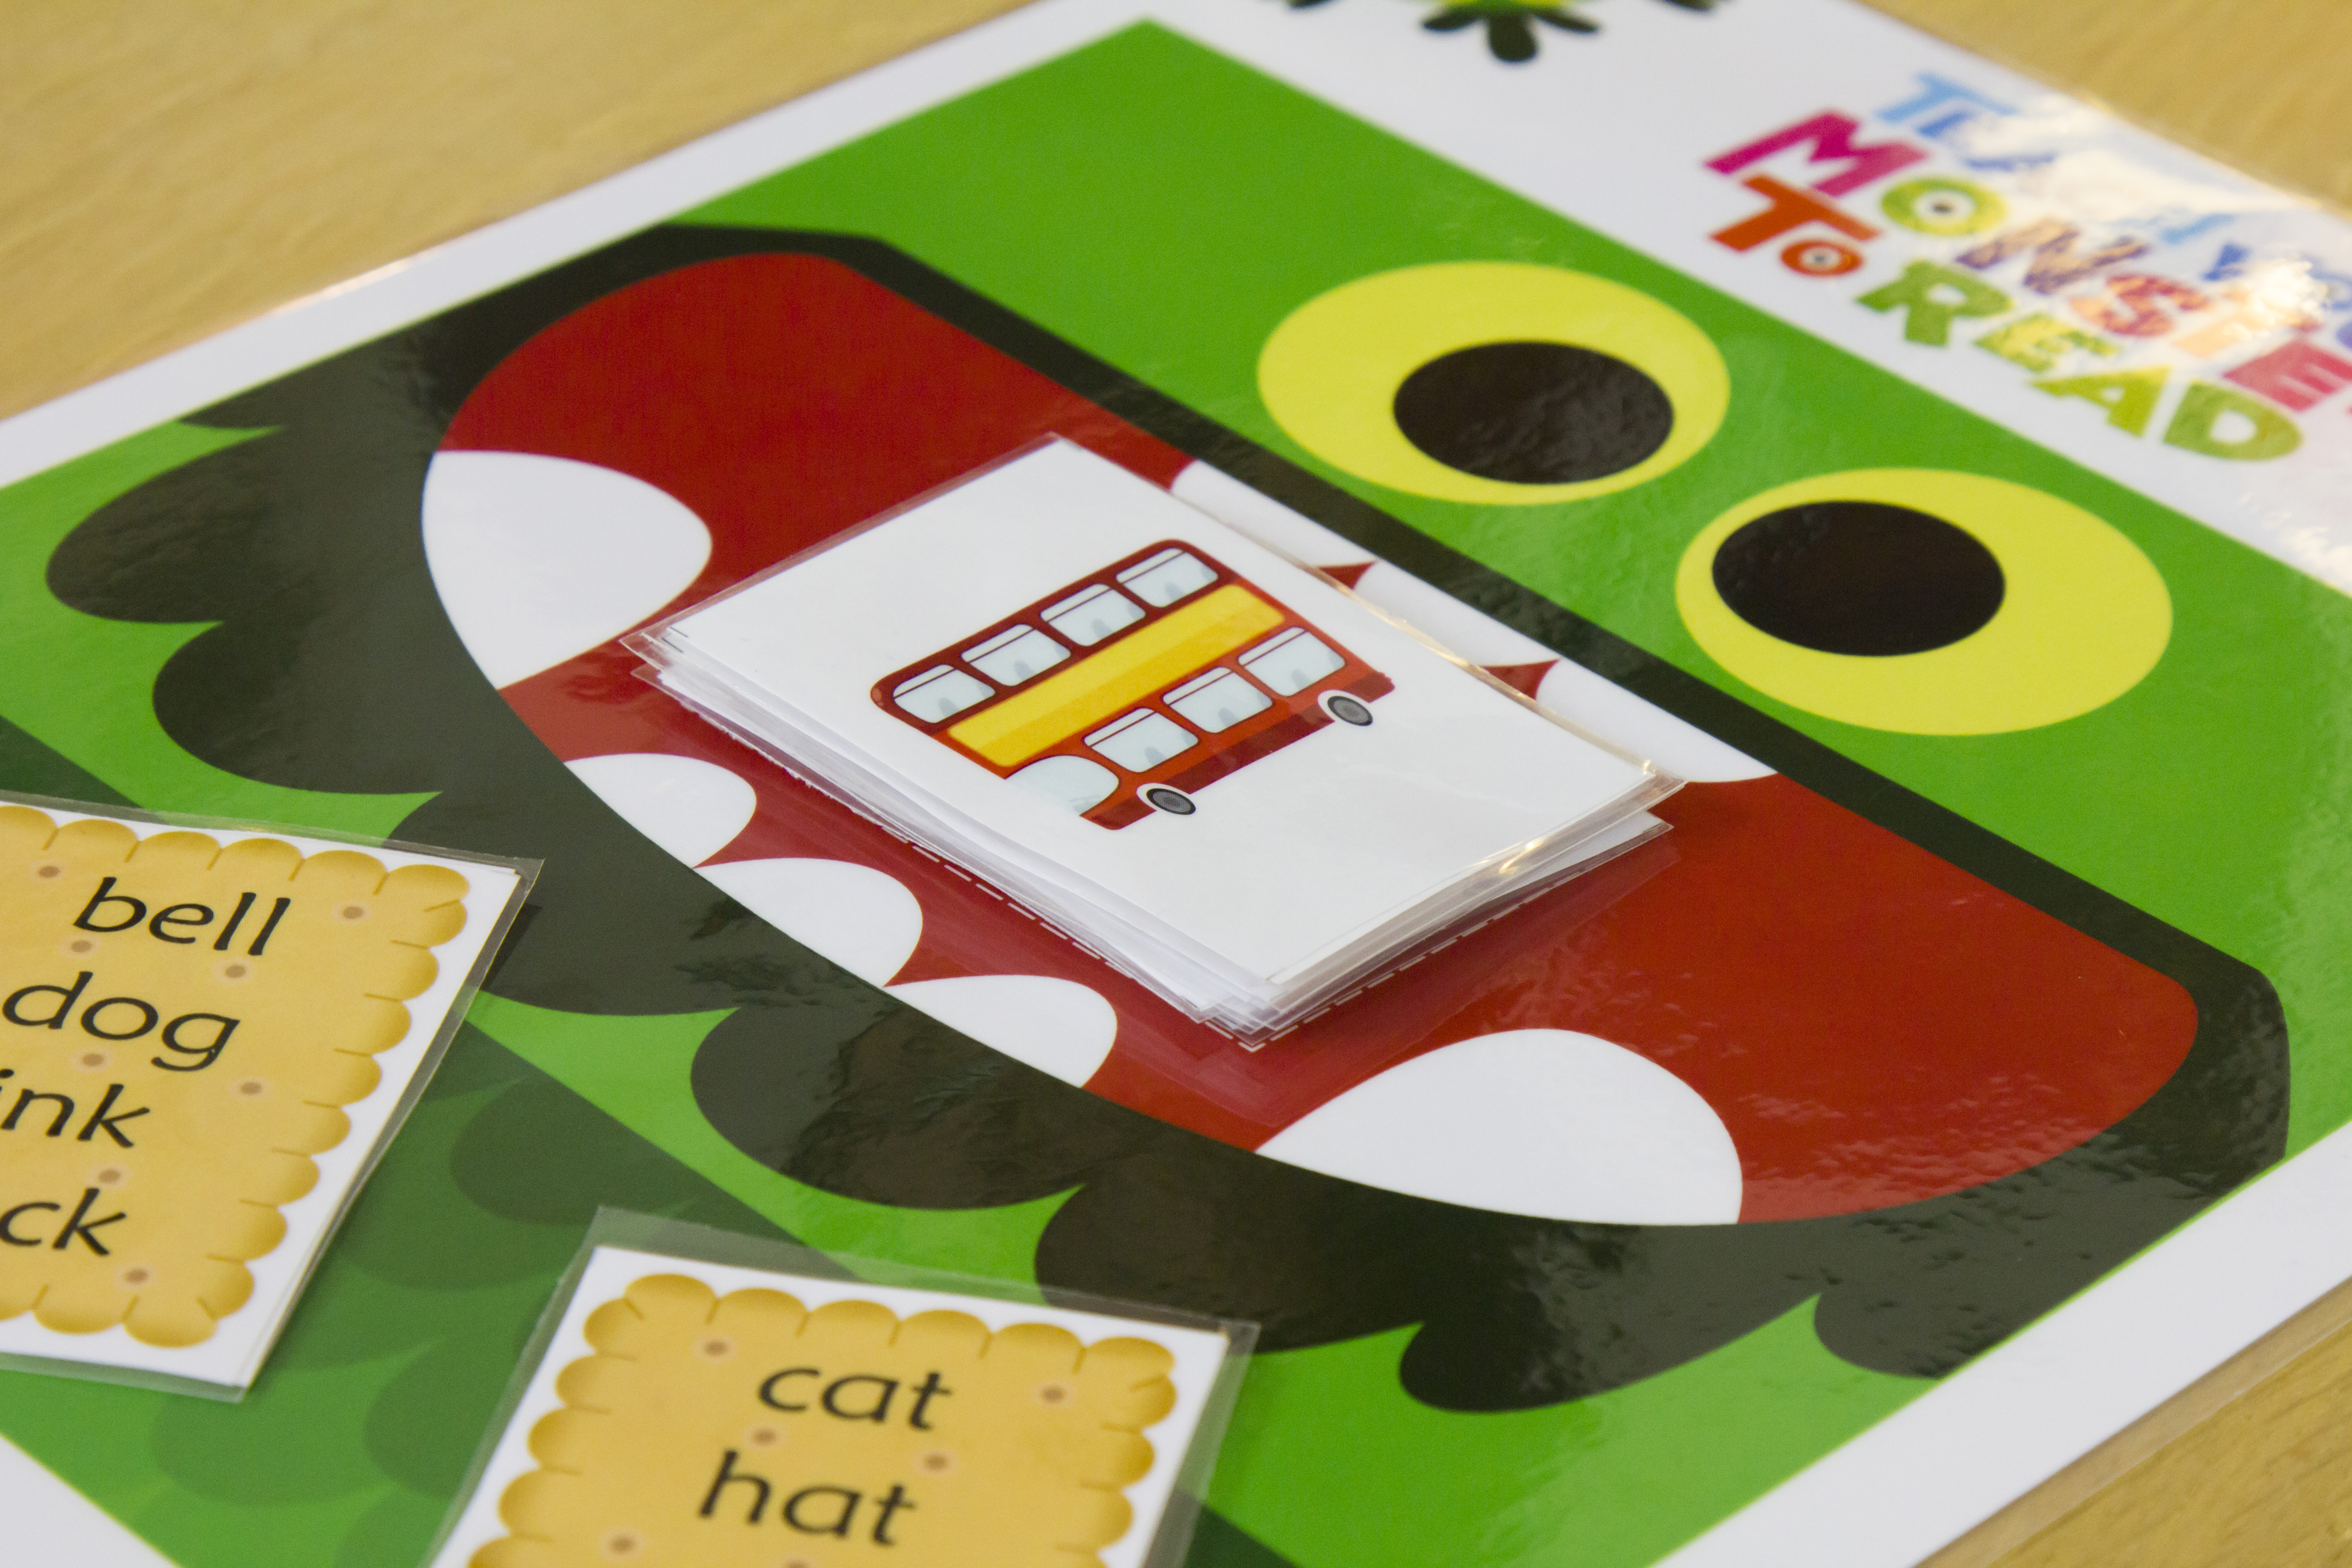 photograph about Printable Phonics Games named Phonics Tabletop Board Video games